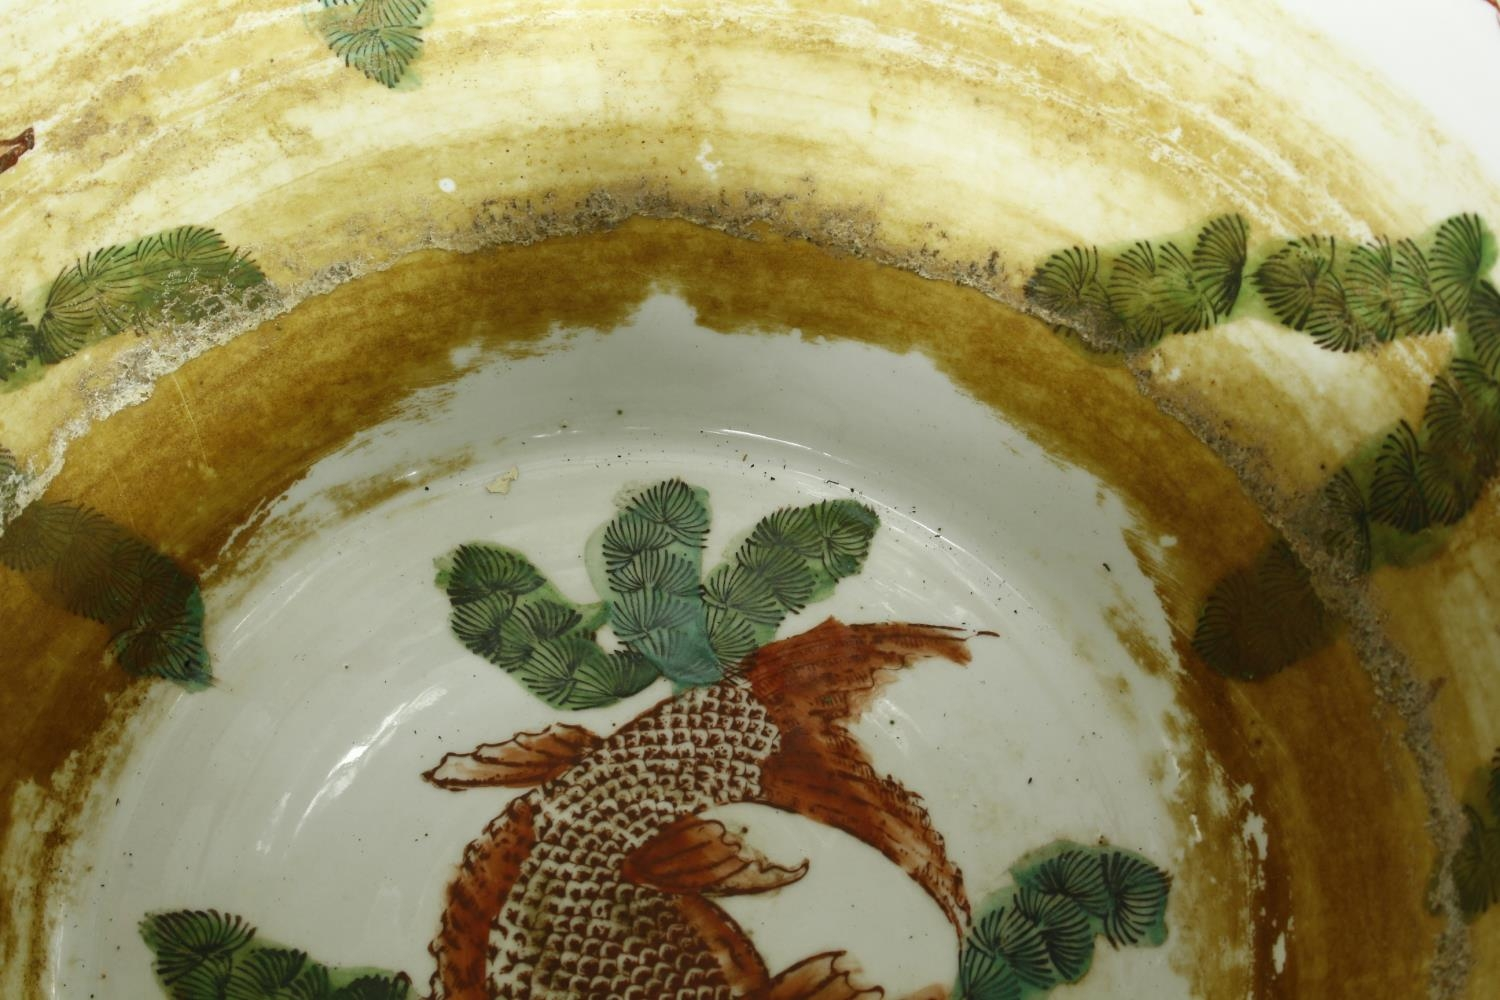 A pair of early 20th century glazed Chinese Imari ceramic planters/fish bowls on carved hardwood - Image 8 of 11